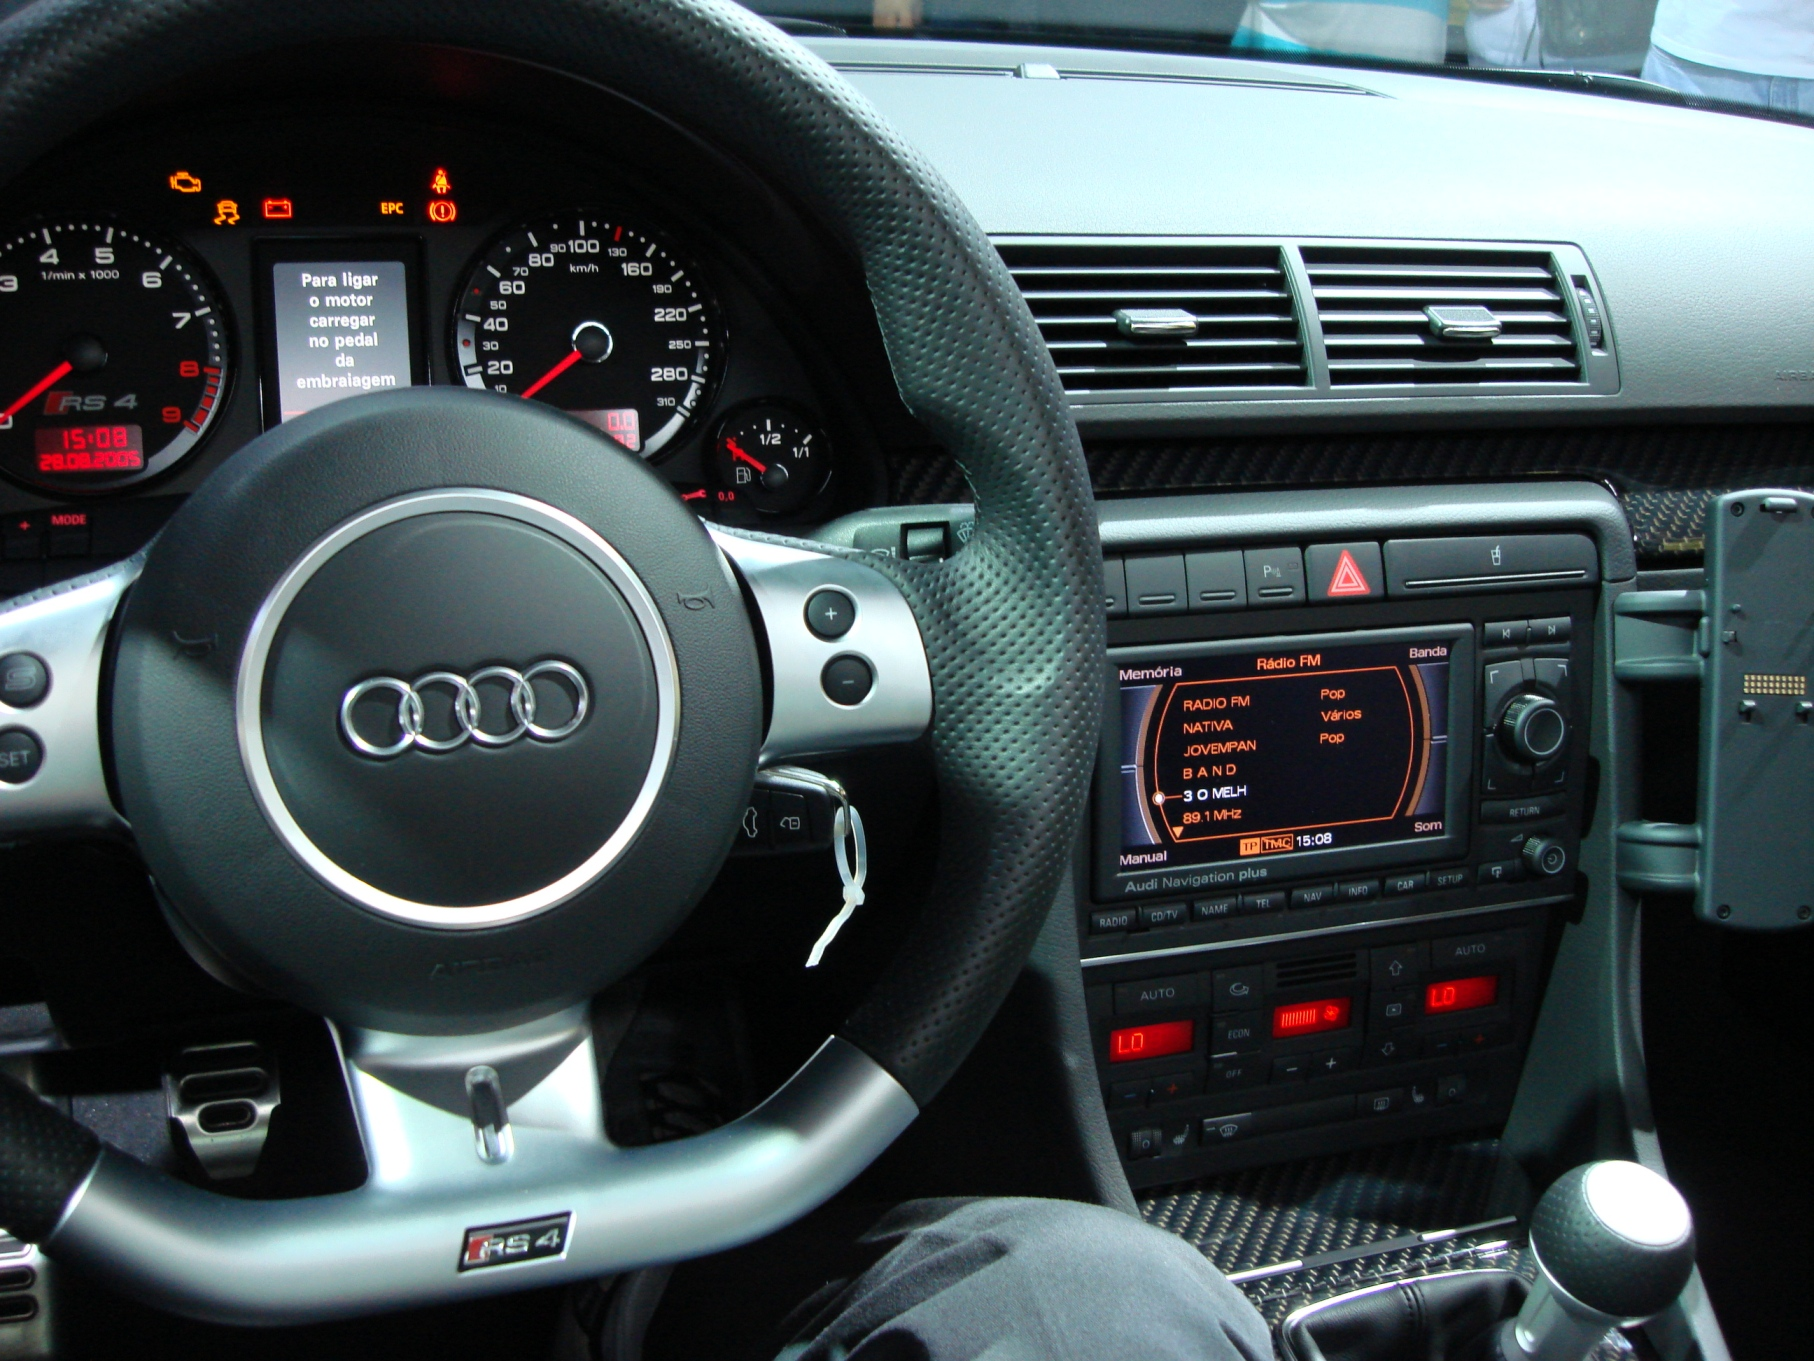 Audi RS4 Avant interior, you'-d be pretty comfortable in here ...